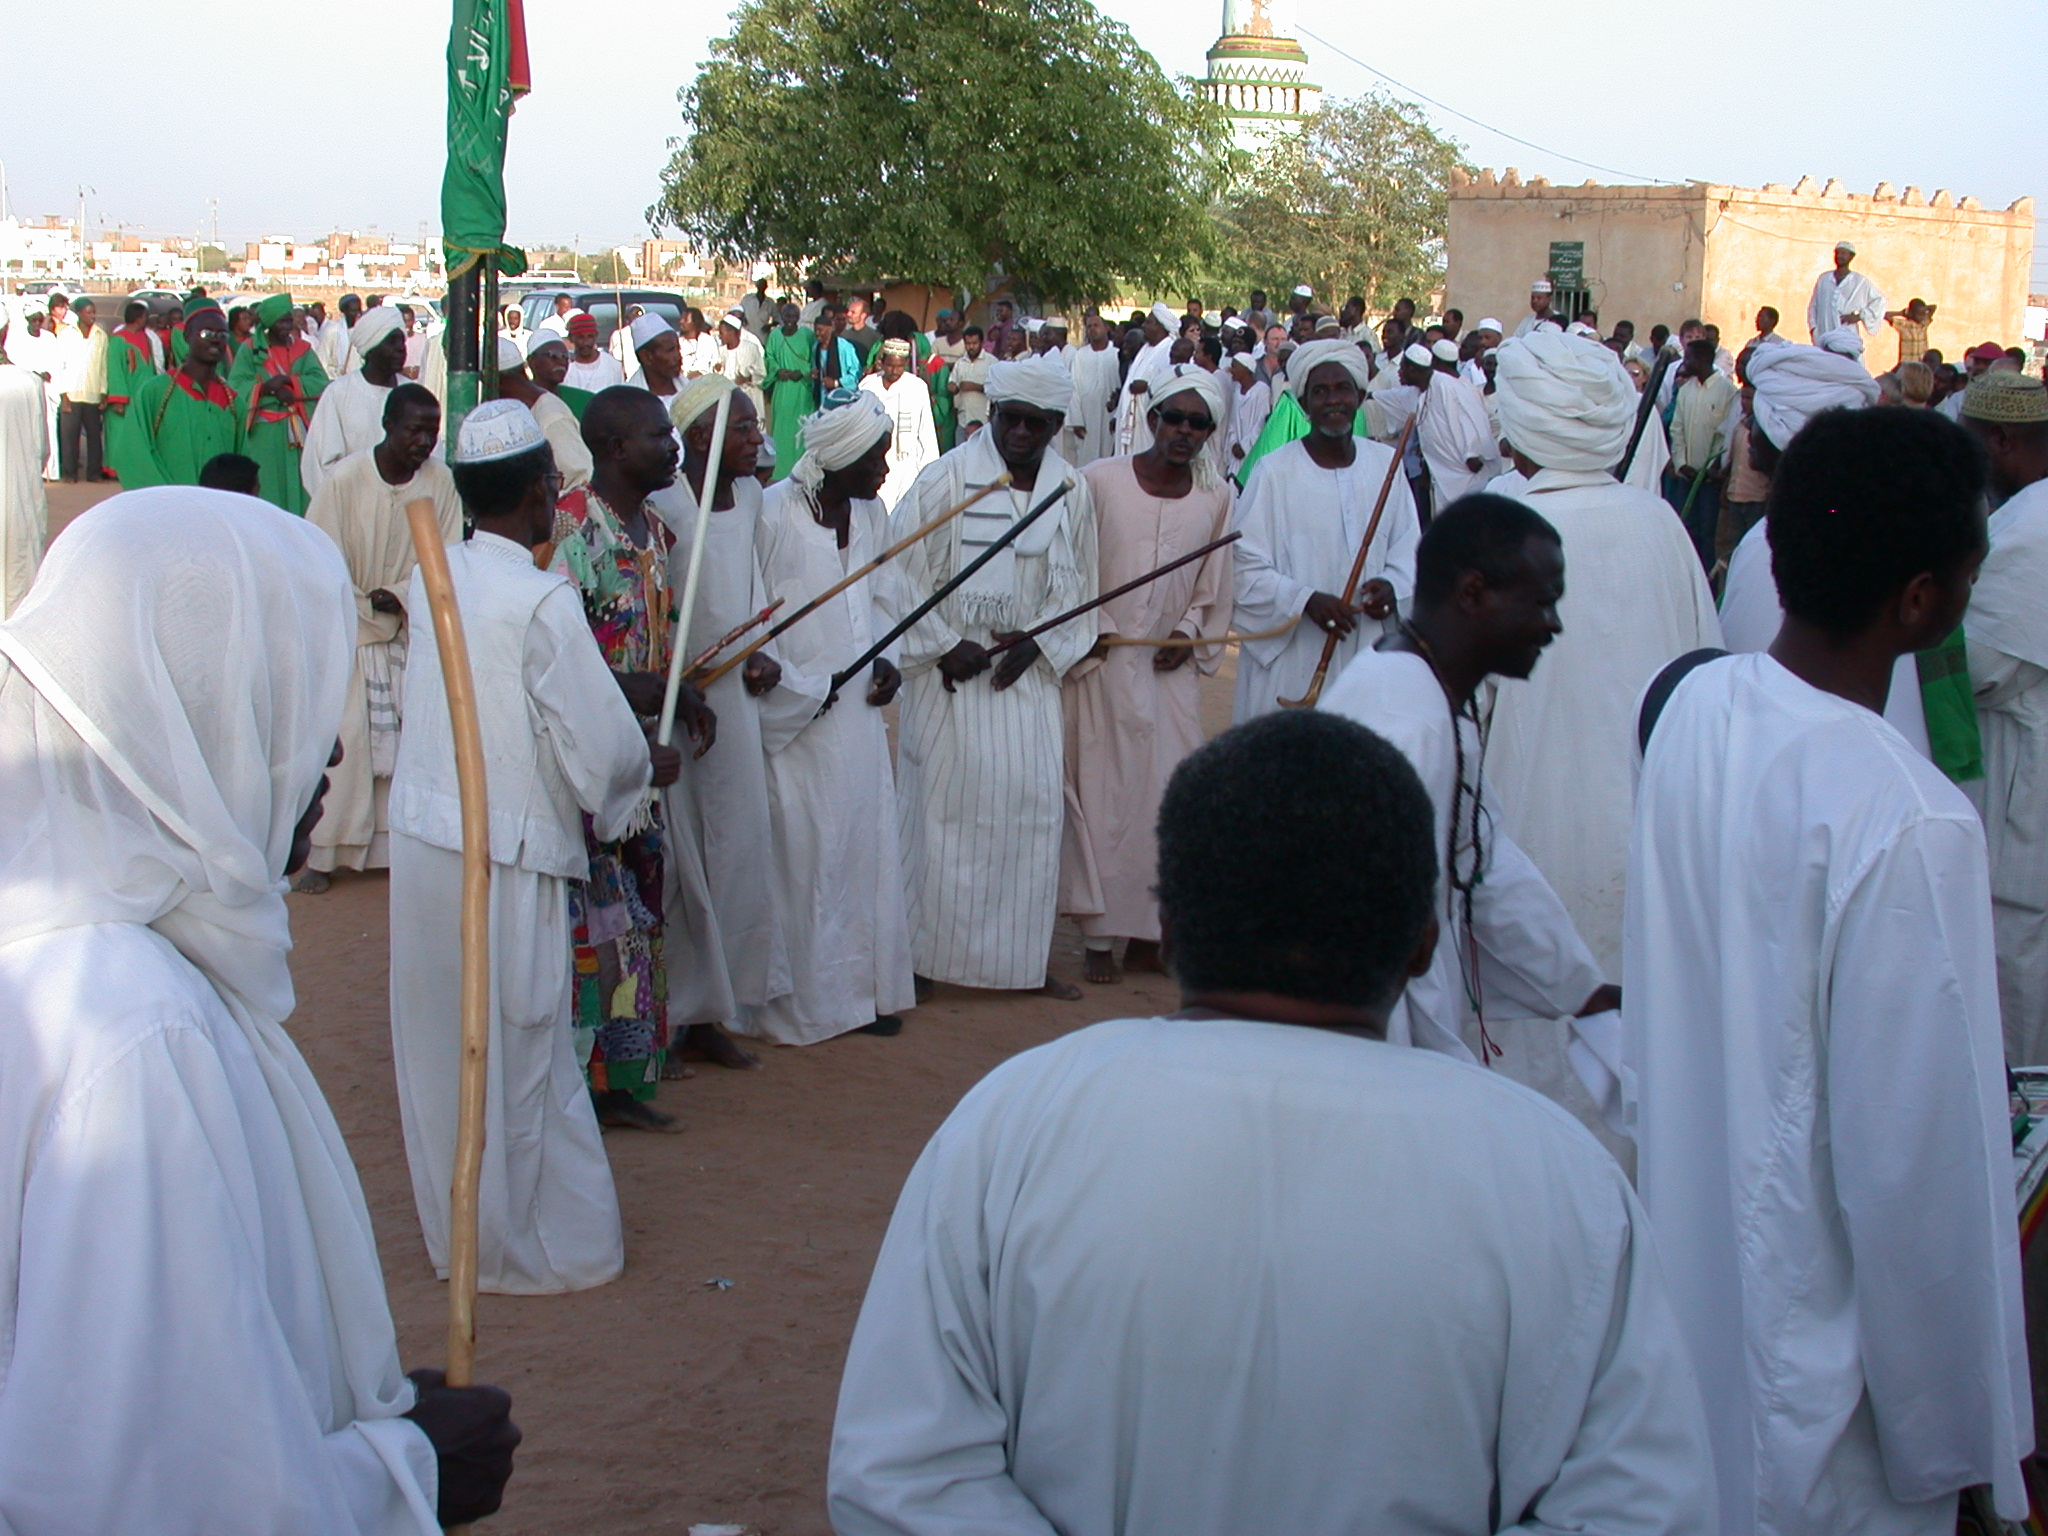 Line Dancing at Sufi Dancing Site, Omdurman, Sudan